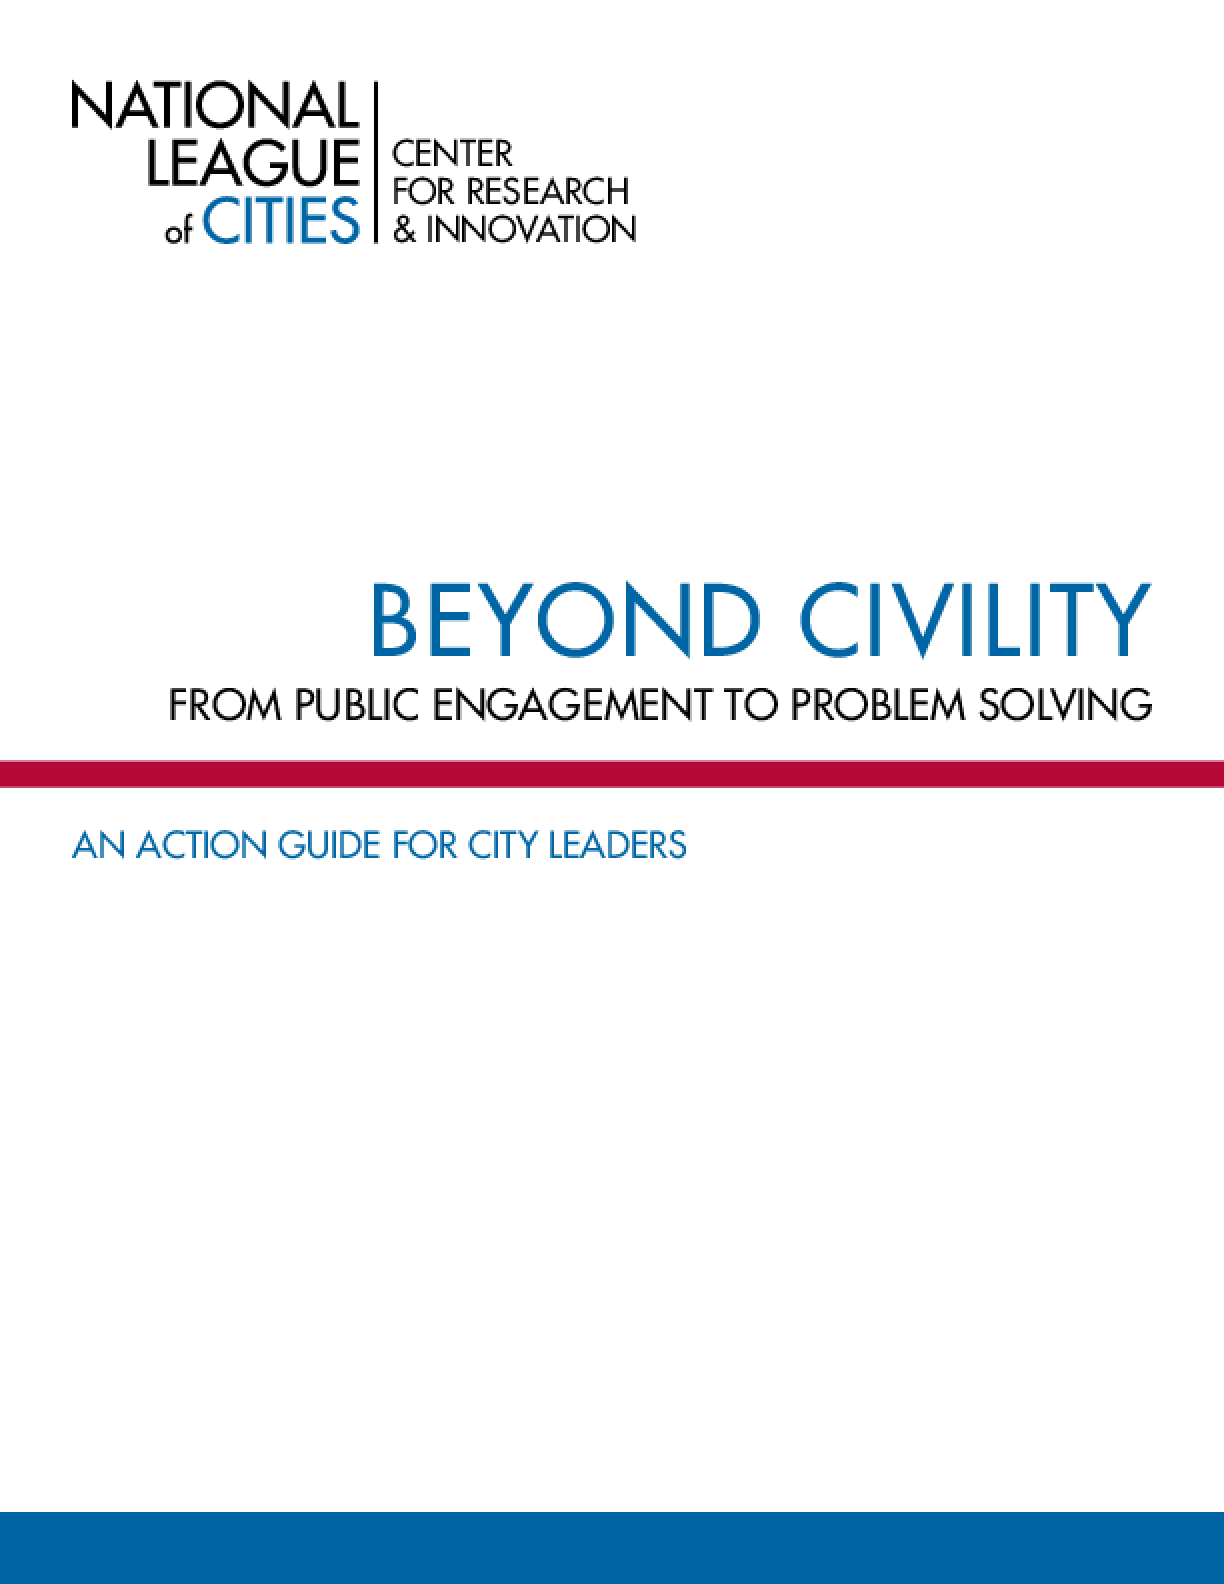 Beyond Civility: From Public Engagement to Problem Solving